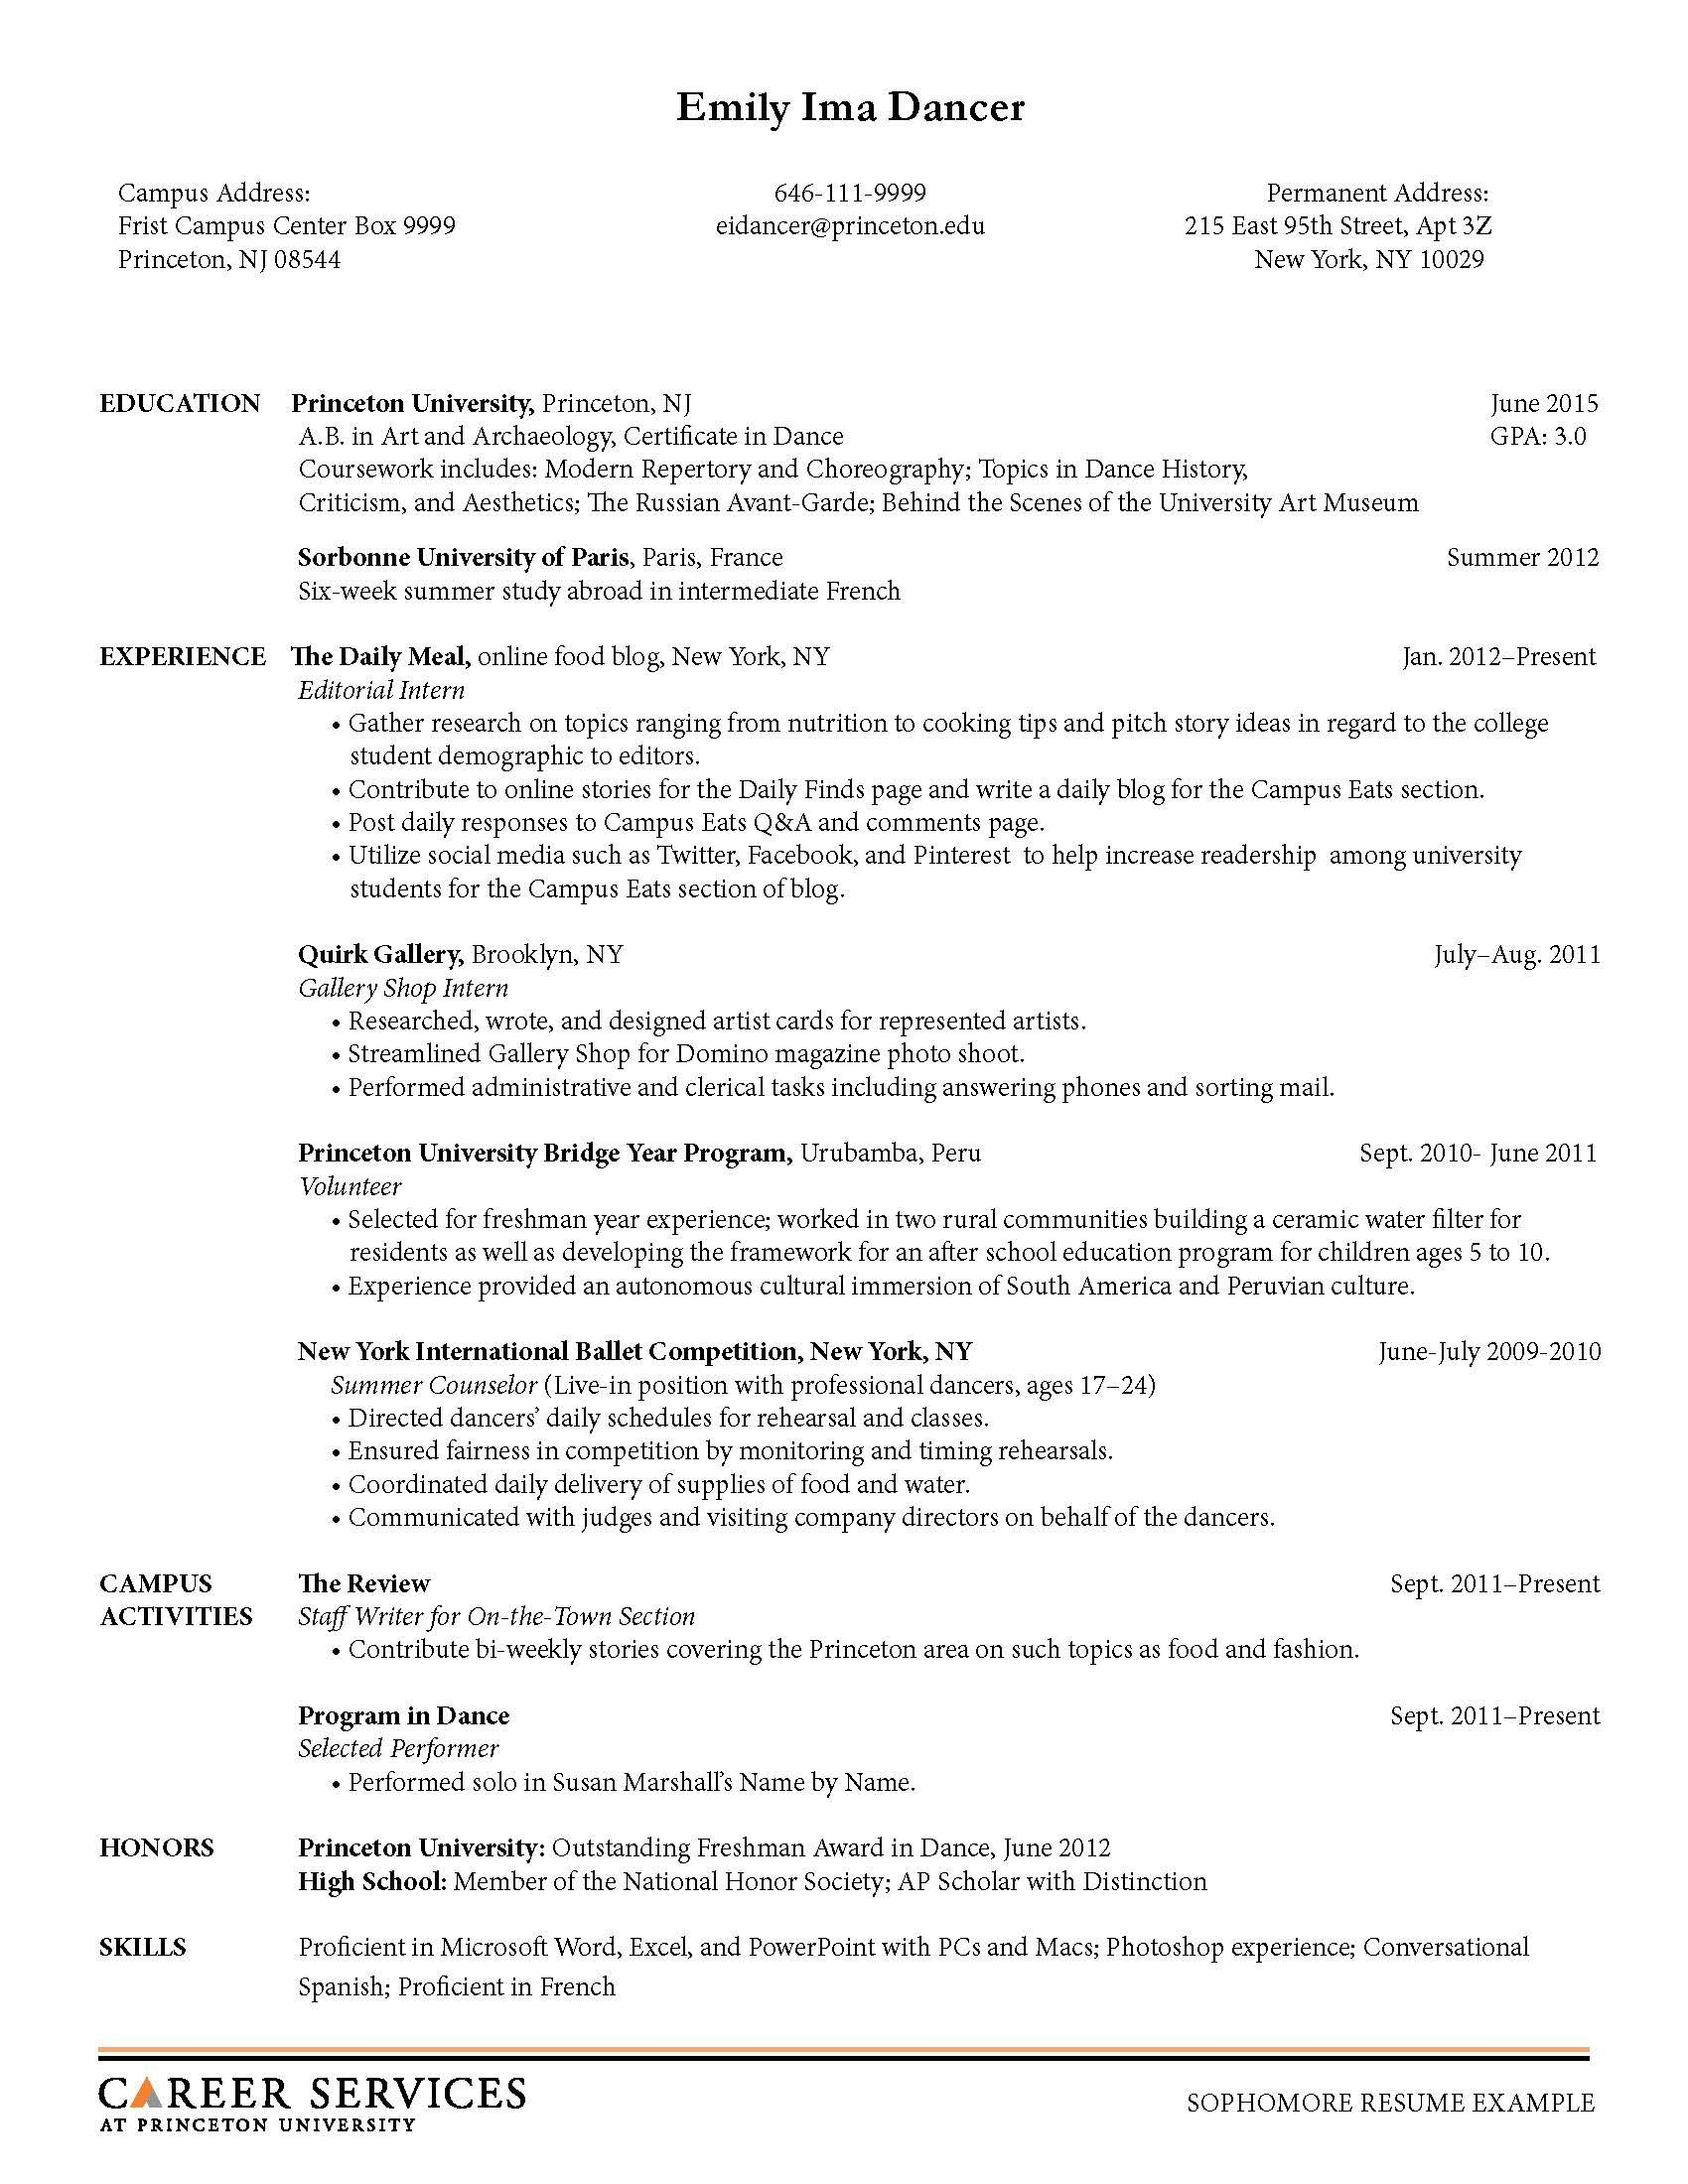 Opposenewapstandardsus  Seductive Sample Resume Resume And Career On Pinterest With Handsome Med Surg Rn Resume Besides Interests In Resume Furthermore Customer Service Resume Objective Statement With Alluring Tips On Resume Writing Also Senior Accountant Resume Examples In Addition Ut Austin Resume And List Of Hard Skills For Resume As Well As What Should You Put On A Resume Additionally Air Force Resume From Pinterestcom With Opposenewapstandardsus  Handsome Sample Resume Resume And Career On Pinterest With Alluring Med Surg Rn Resume Besides Interests In Resume Furthermore Customer Service Resume Objective Statement And Seductive Tips On Resume Writing Also Senior Accountant Resume Examples In Addition Ut Austin Resume From Pinterestcom